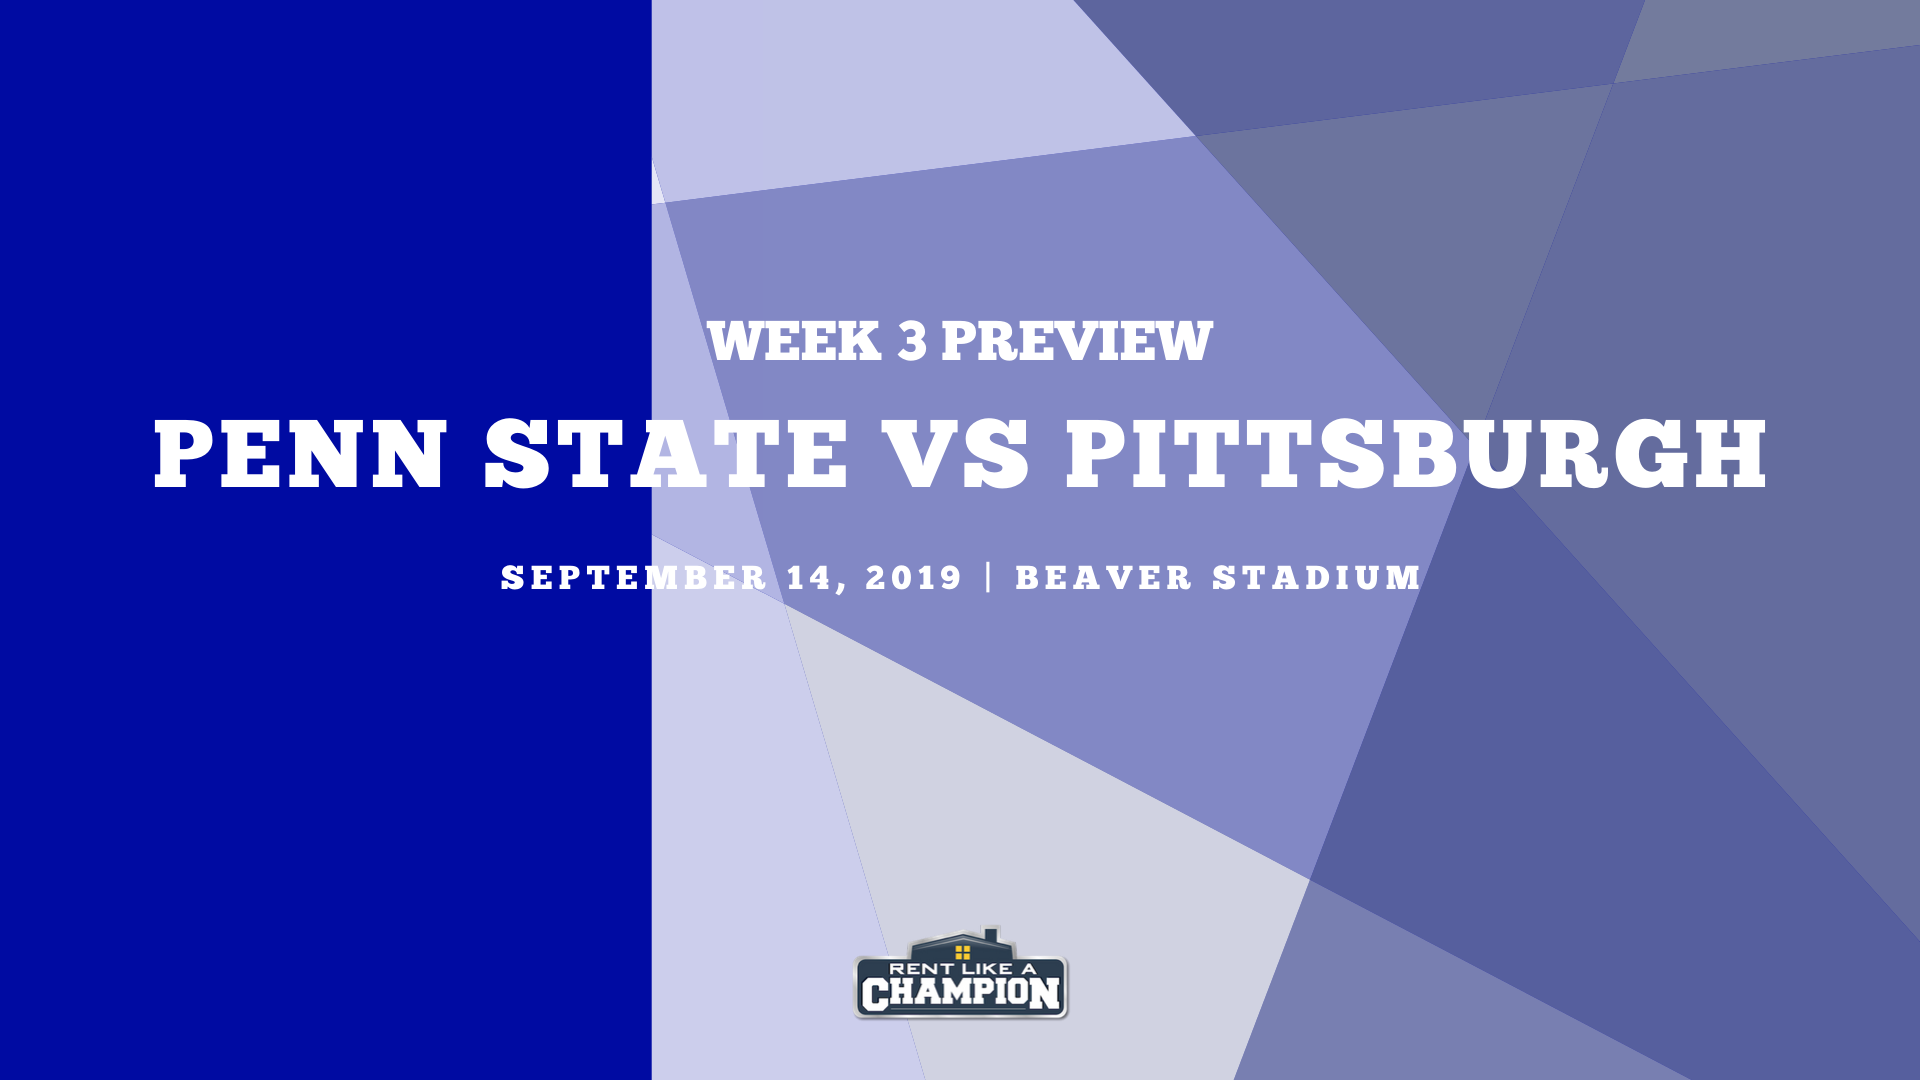 Penn State Game Preview Template-1